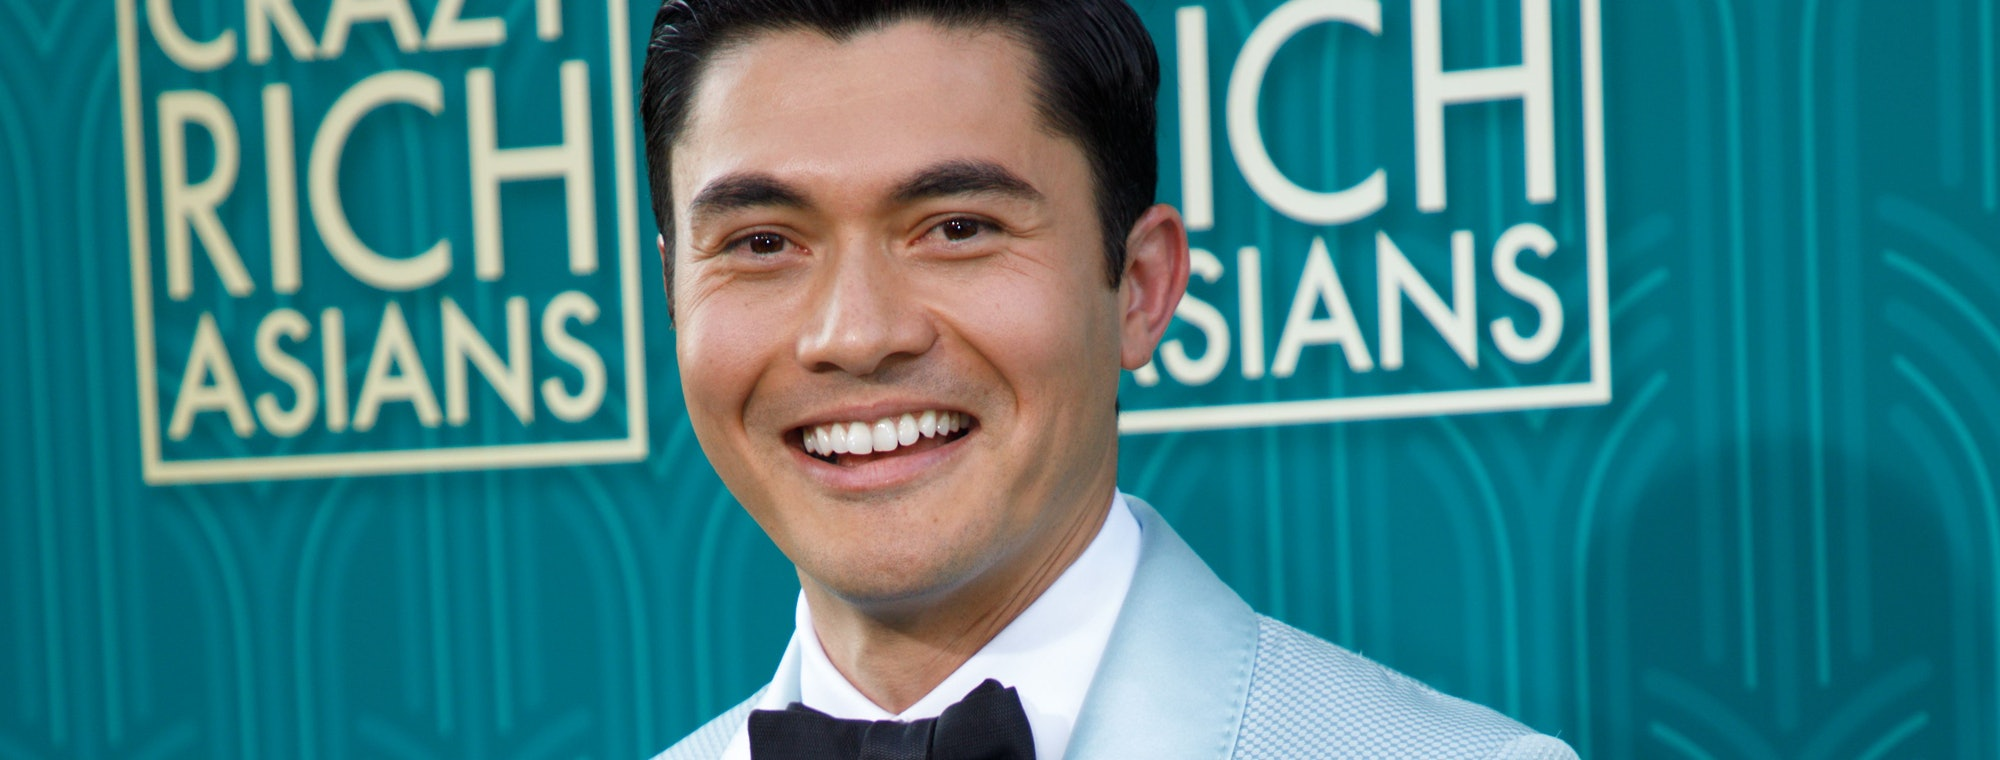 'Crazy Rich Asians' Henry Golding Knows You Think He's Not Asian Enough —  Here's Why He Says You Shouldn't Care